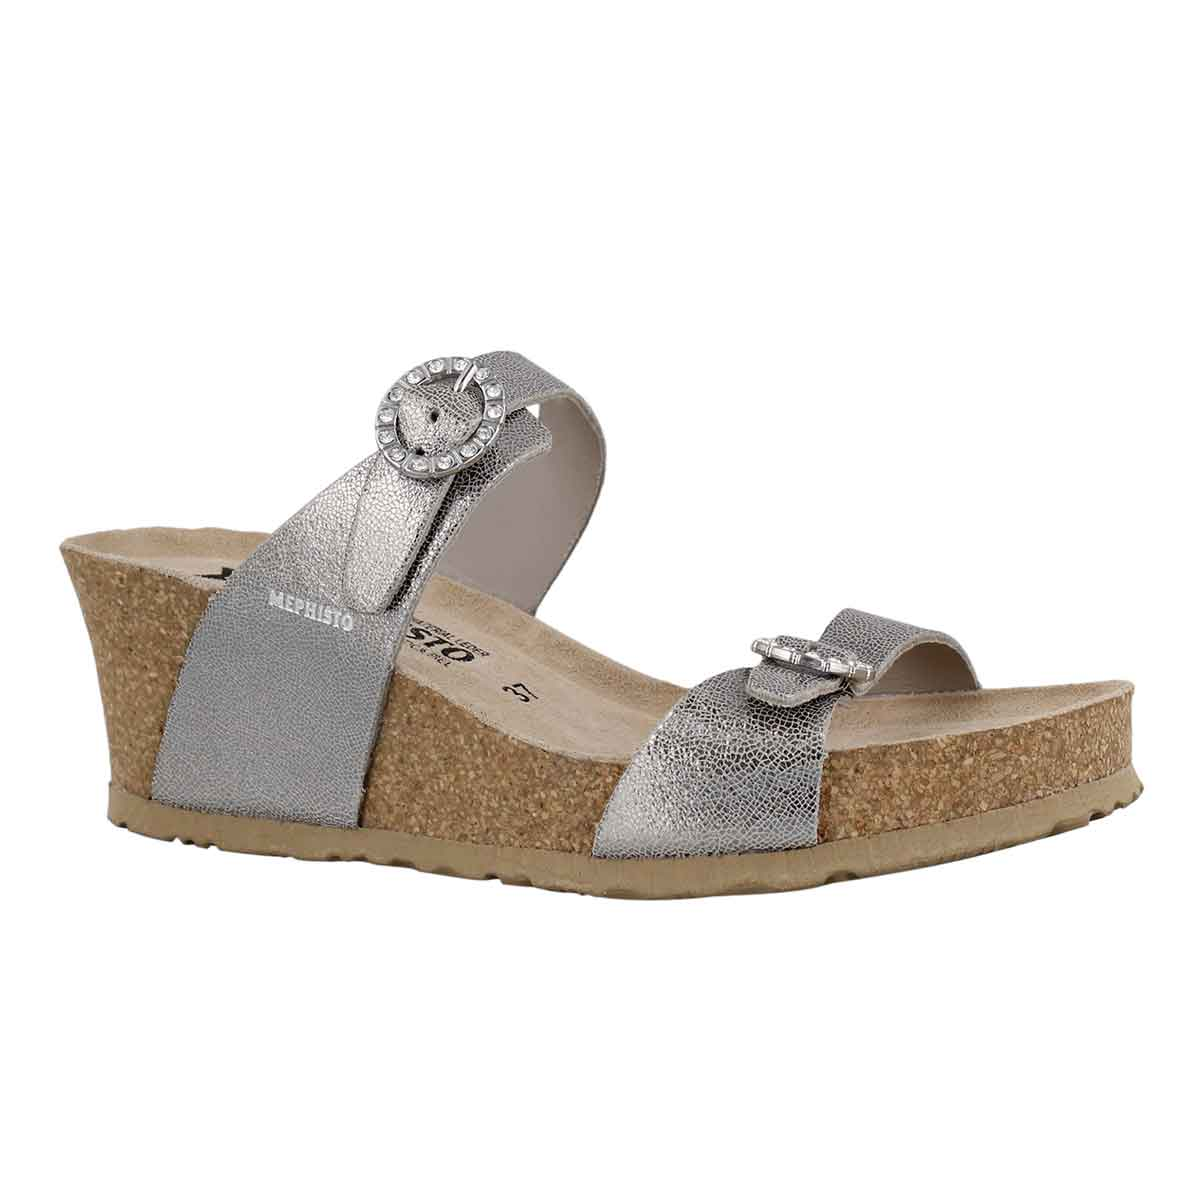 Women's LIDIA silver cork footbed wedge sandals